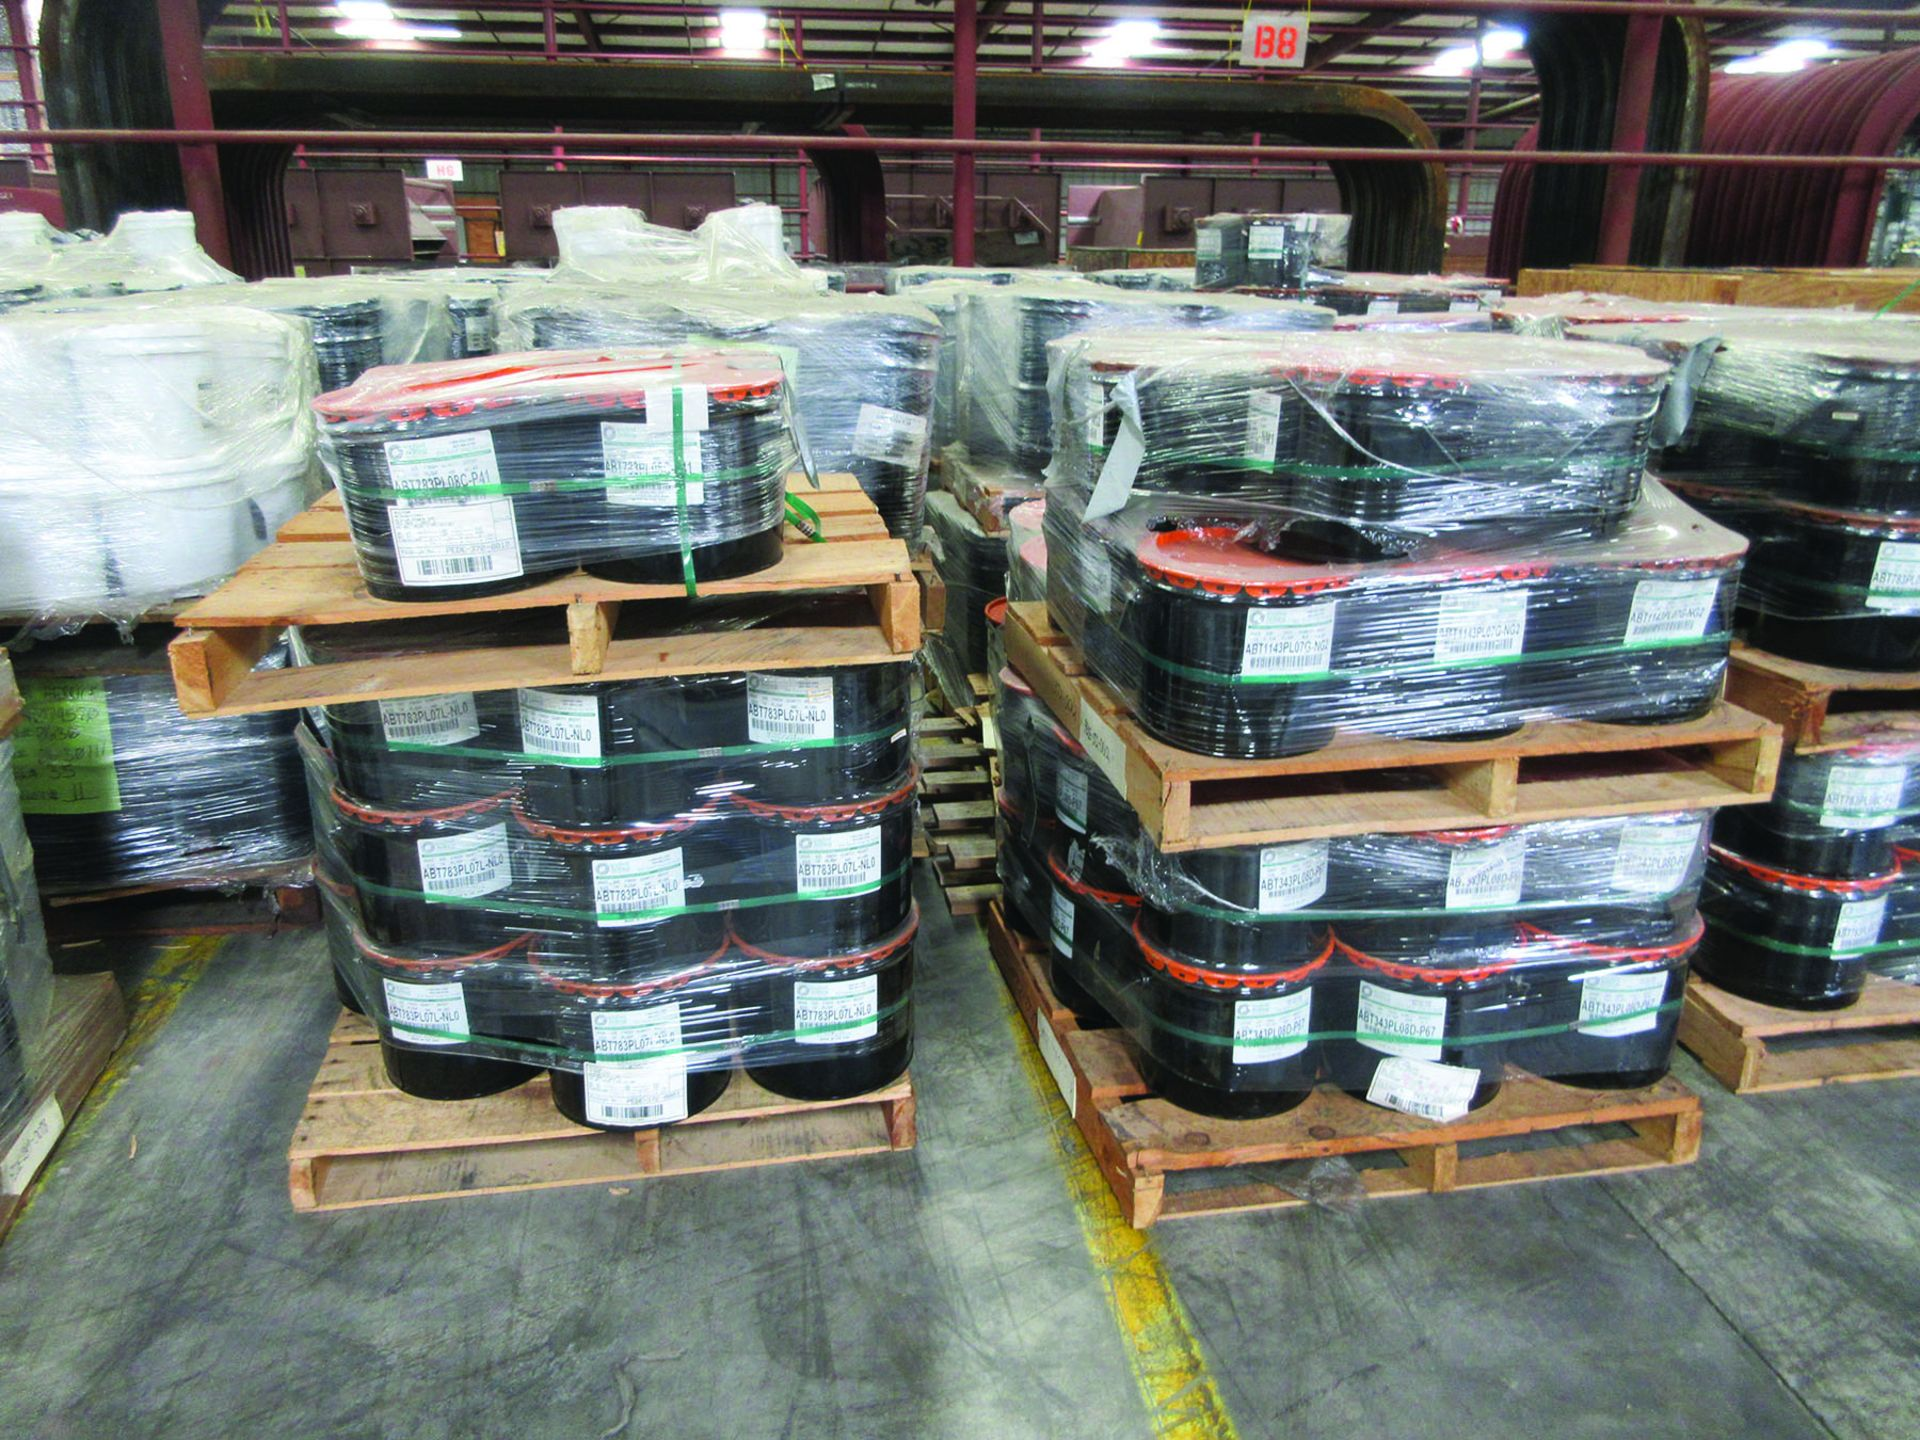 (72 +/-) PALLETS OF STRUCTURAL SCREWS, WASHERS, NUTS, GRID B8 - Image 2 of 3